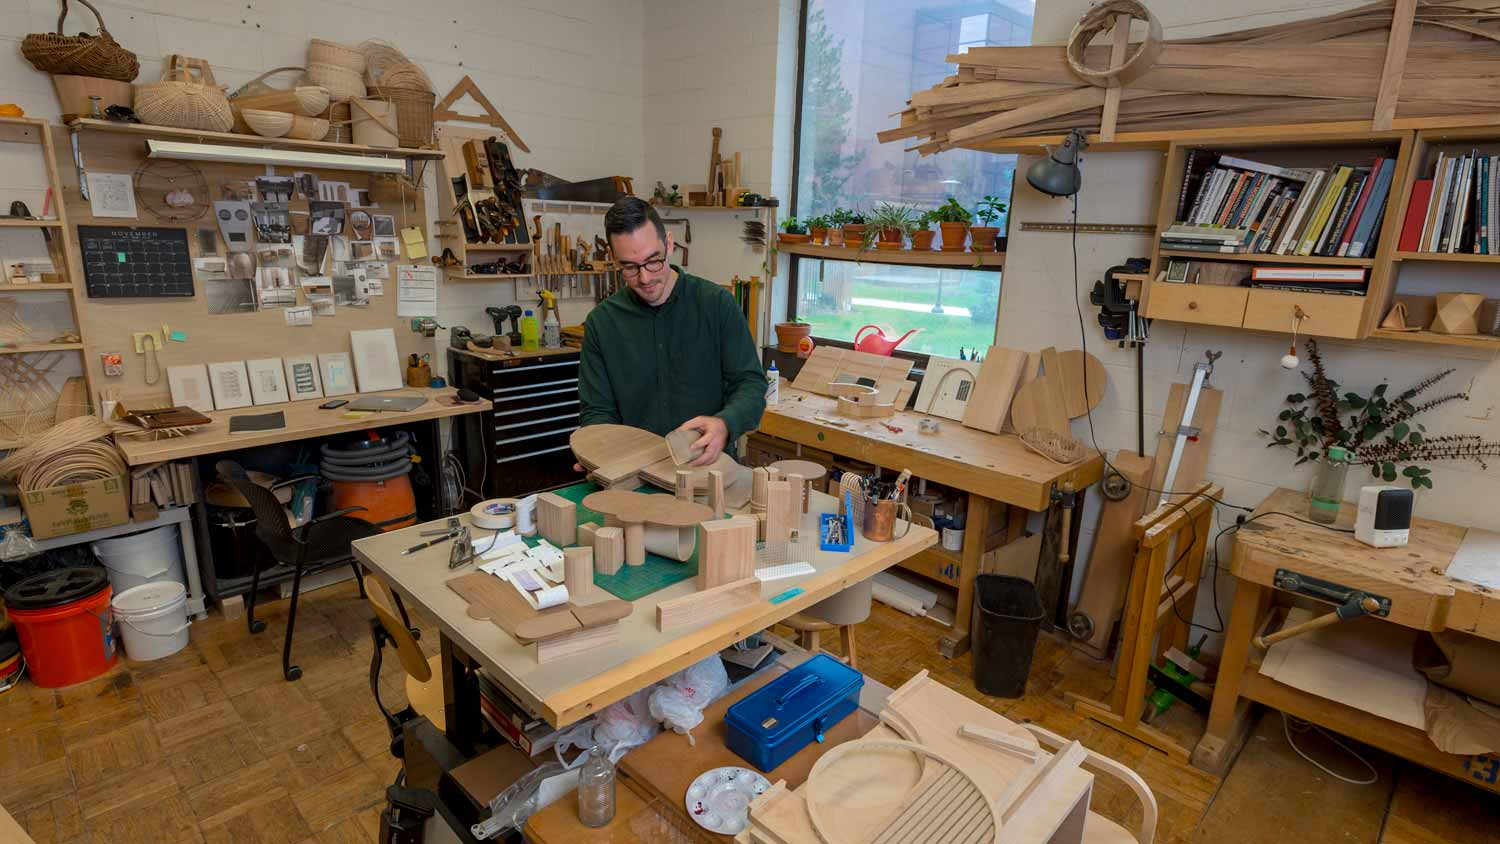 Graduate student working in a woodworking shop.